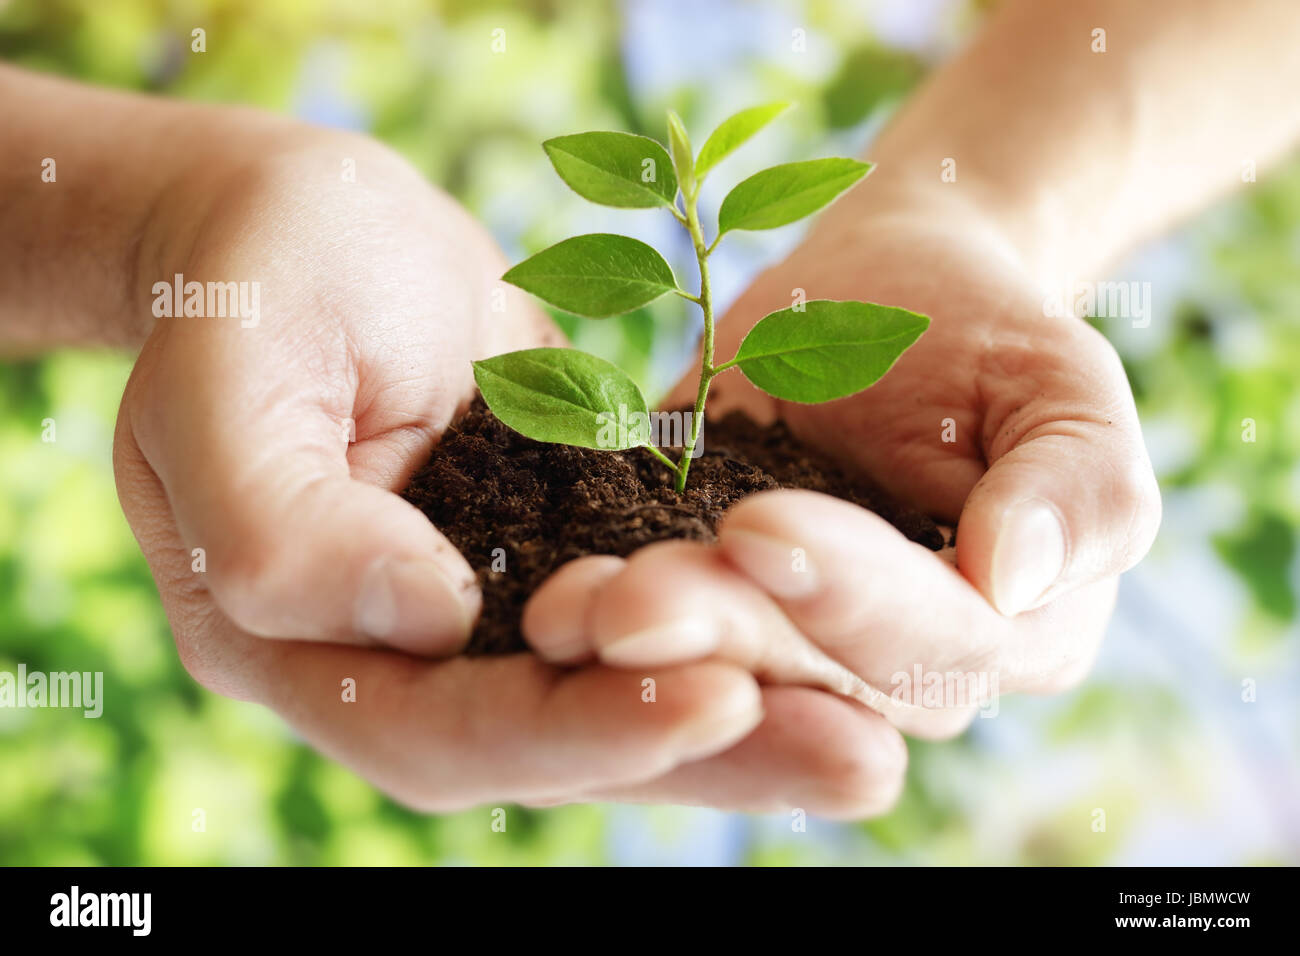 Taking care of new development hands holding new life plant - Stock Image